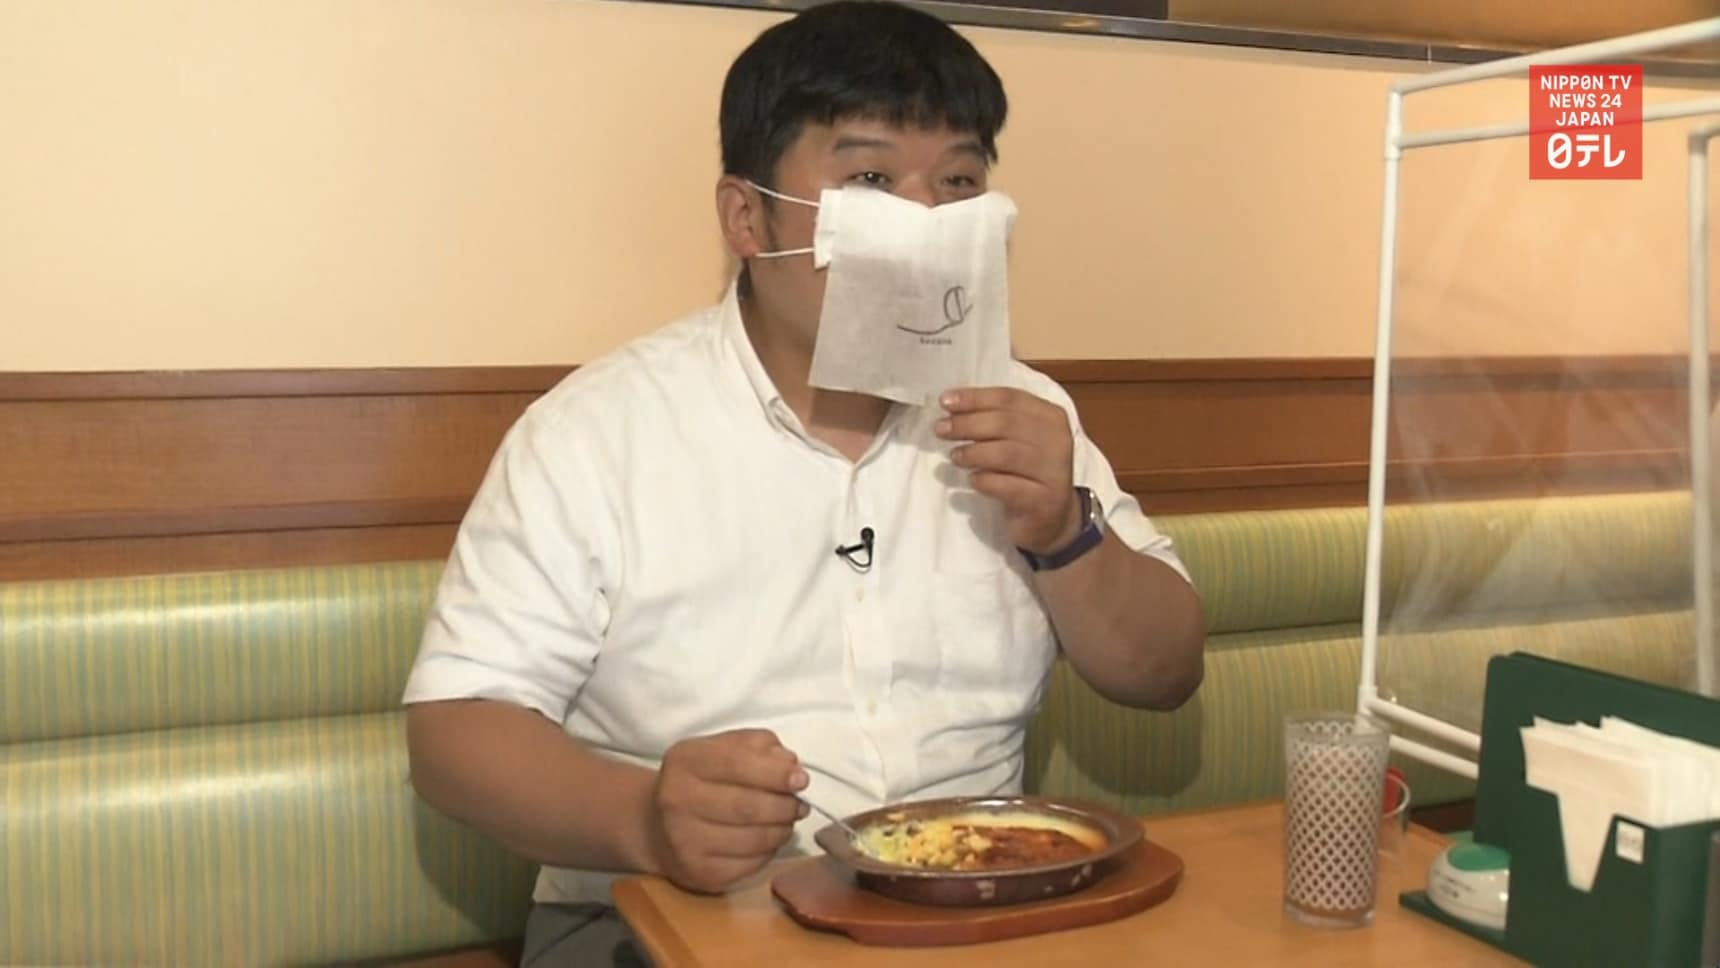 Keep Your Mask On, Even After the Food Arrives